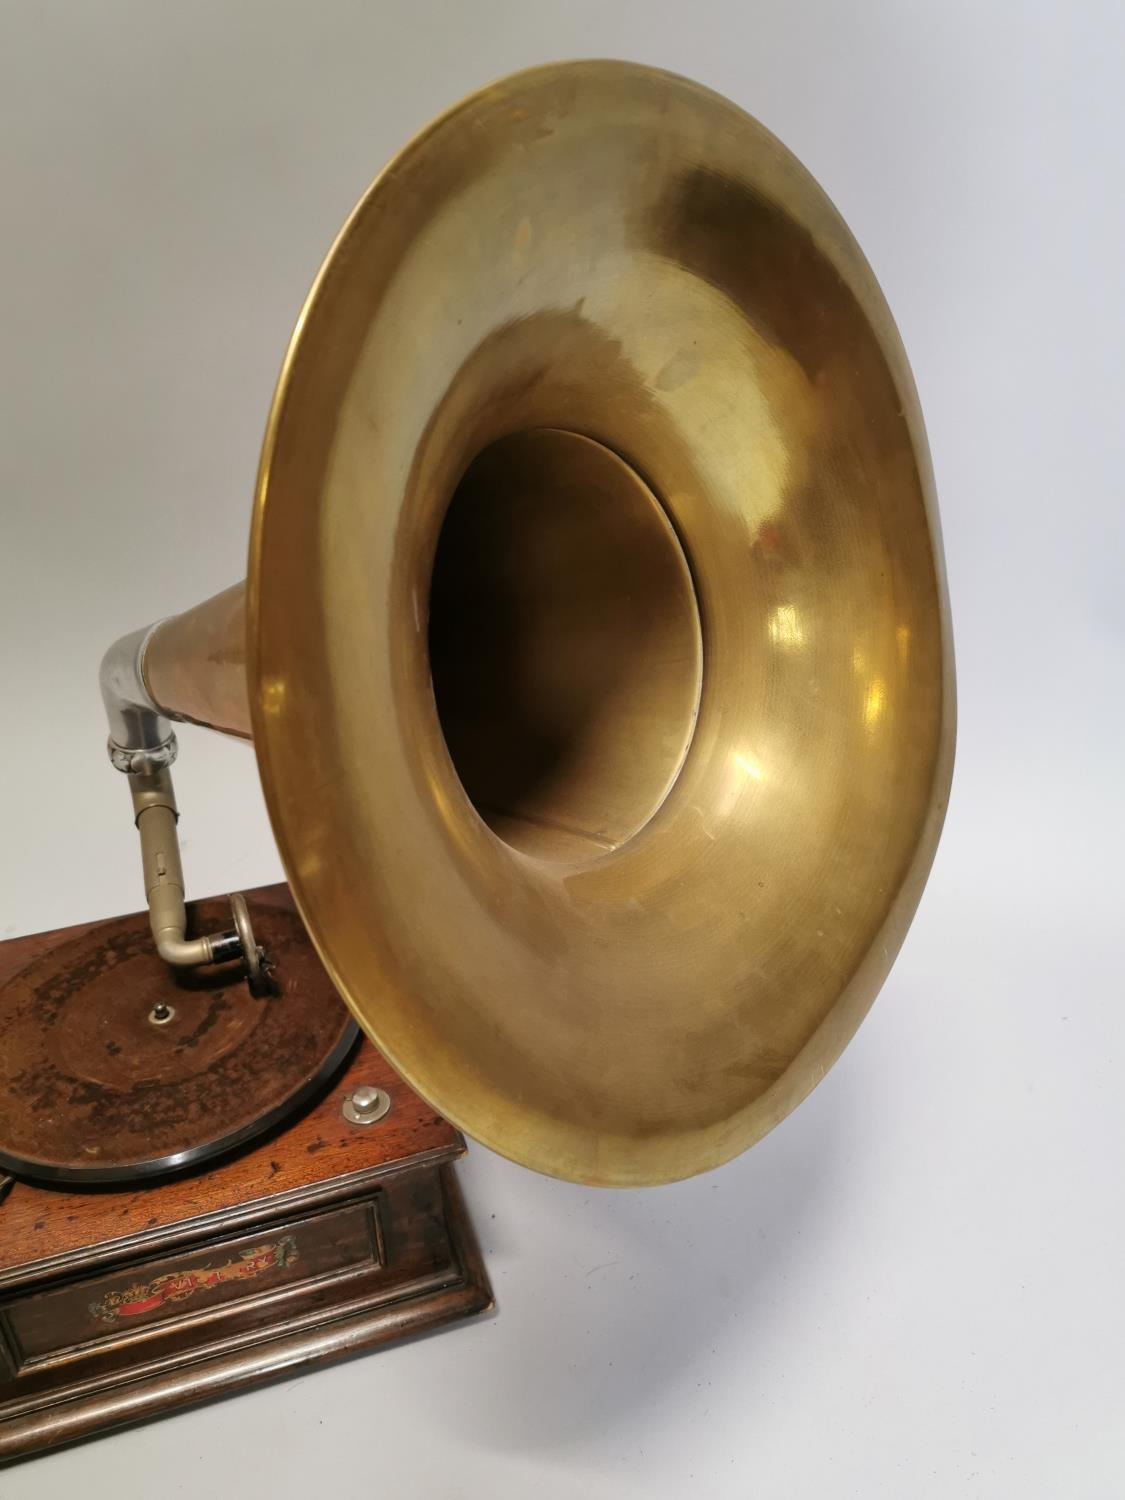 Victory gramophone in oak case with brass horn - Image 3 of 7